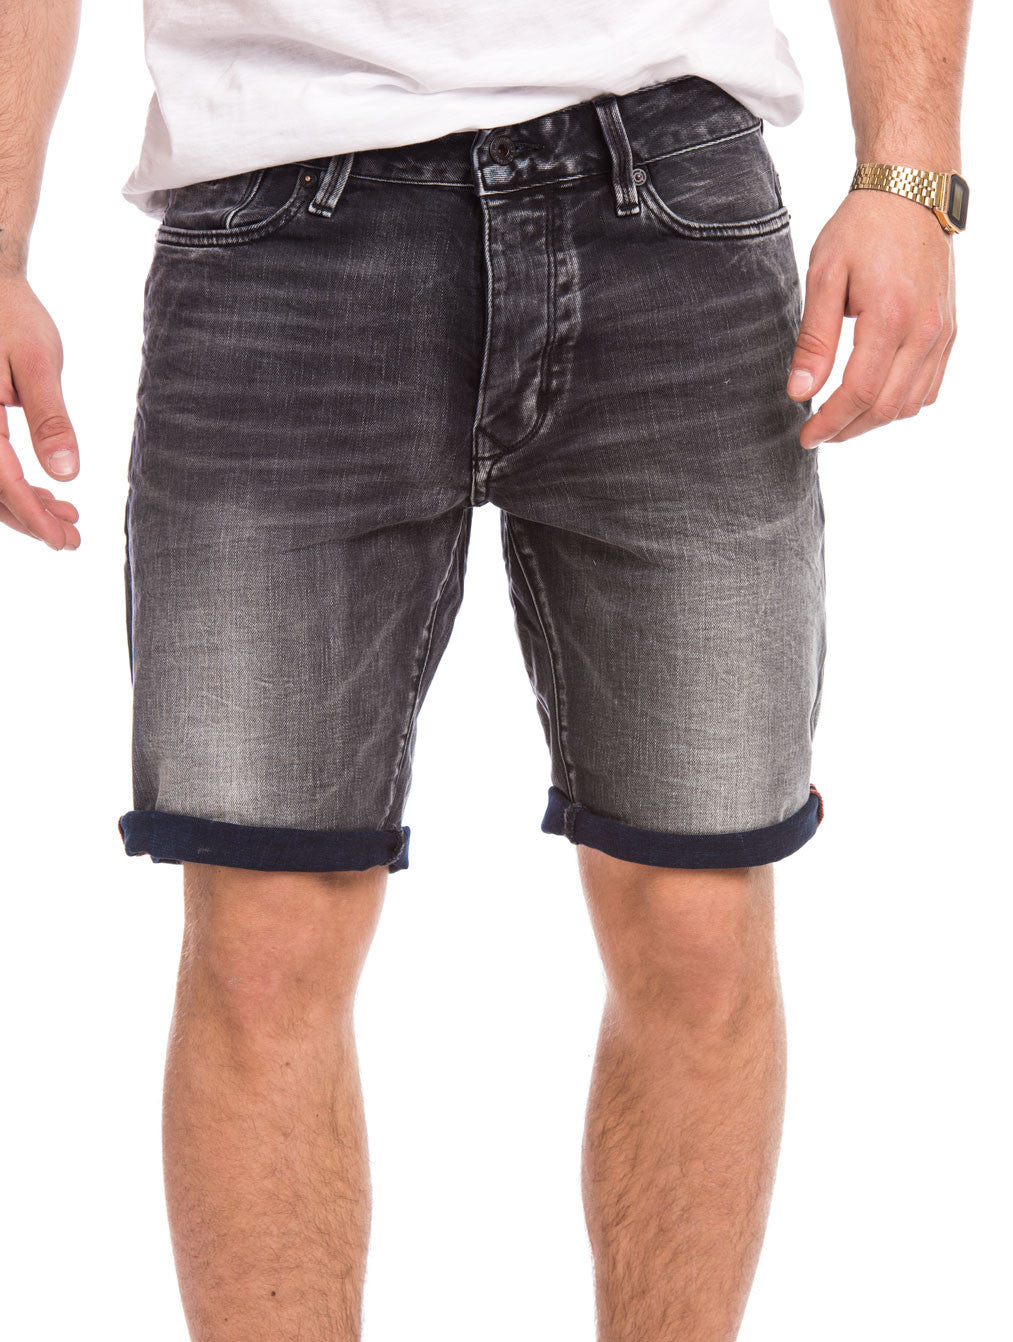 MEN'S SHORTS | BIKER SHORTS | SUPERDRY